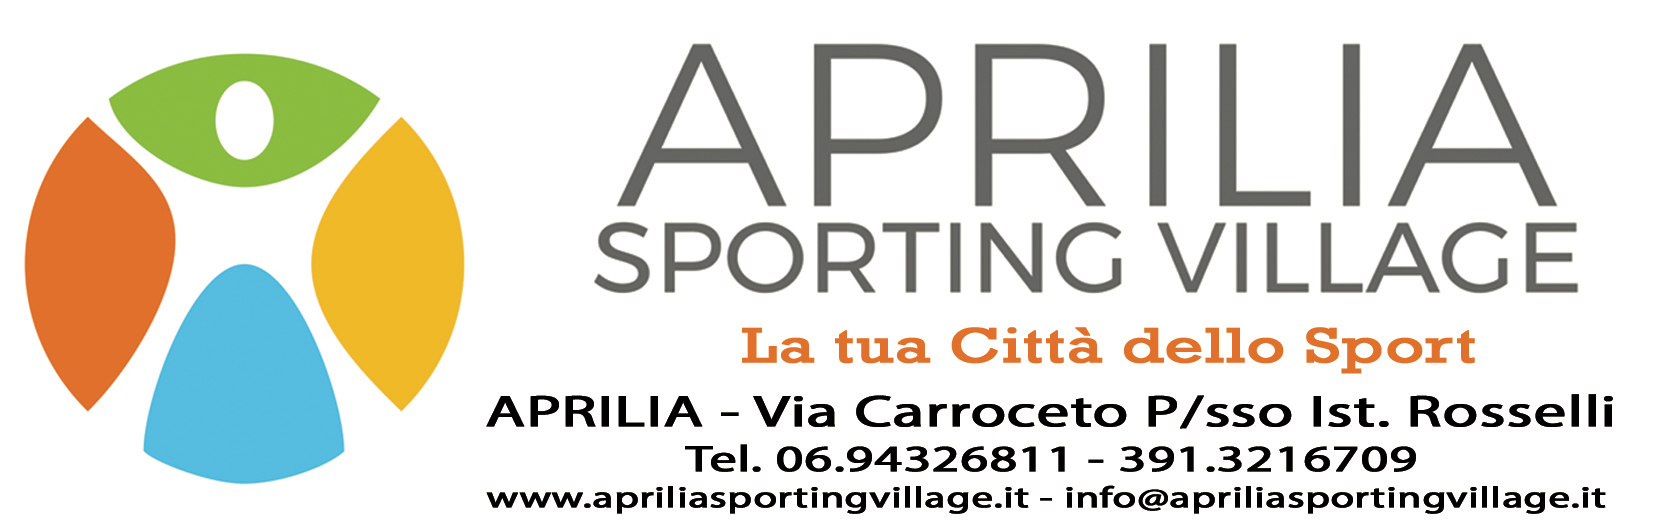 apriliasportingvillage.it